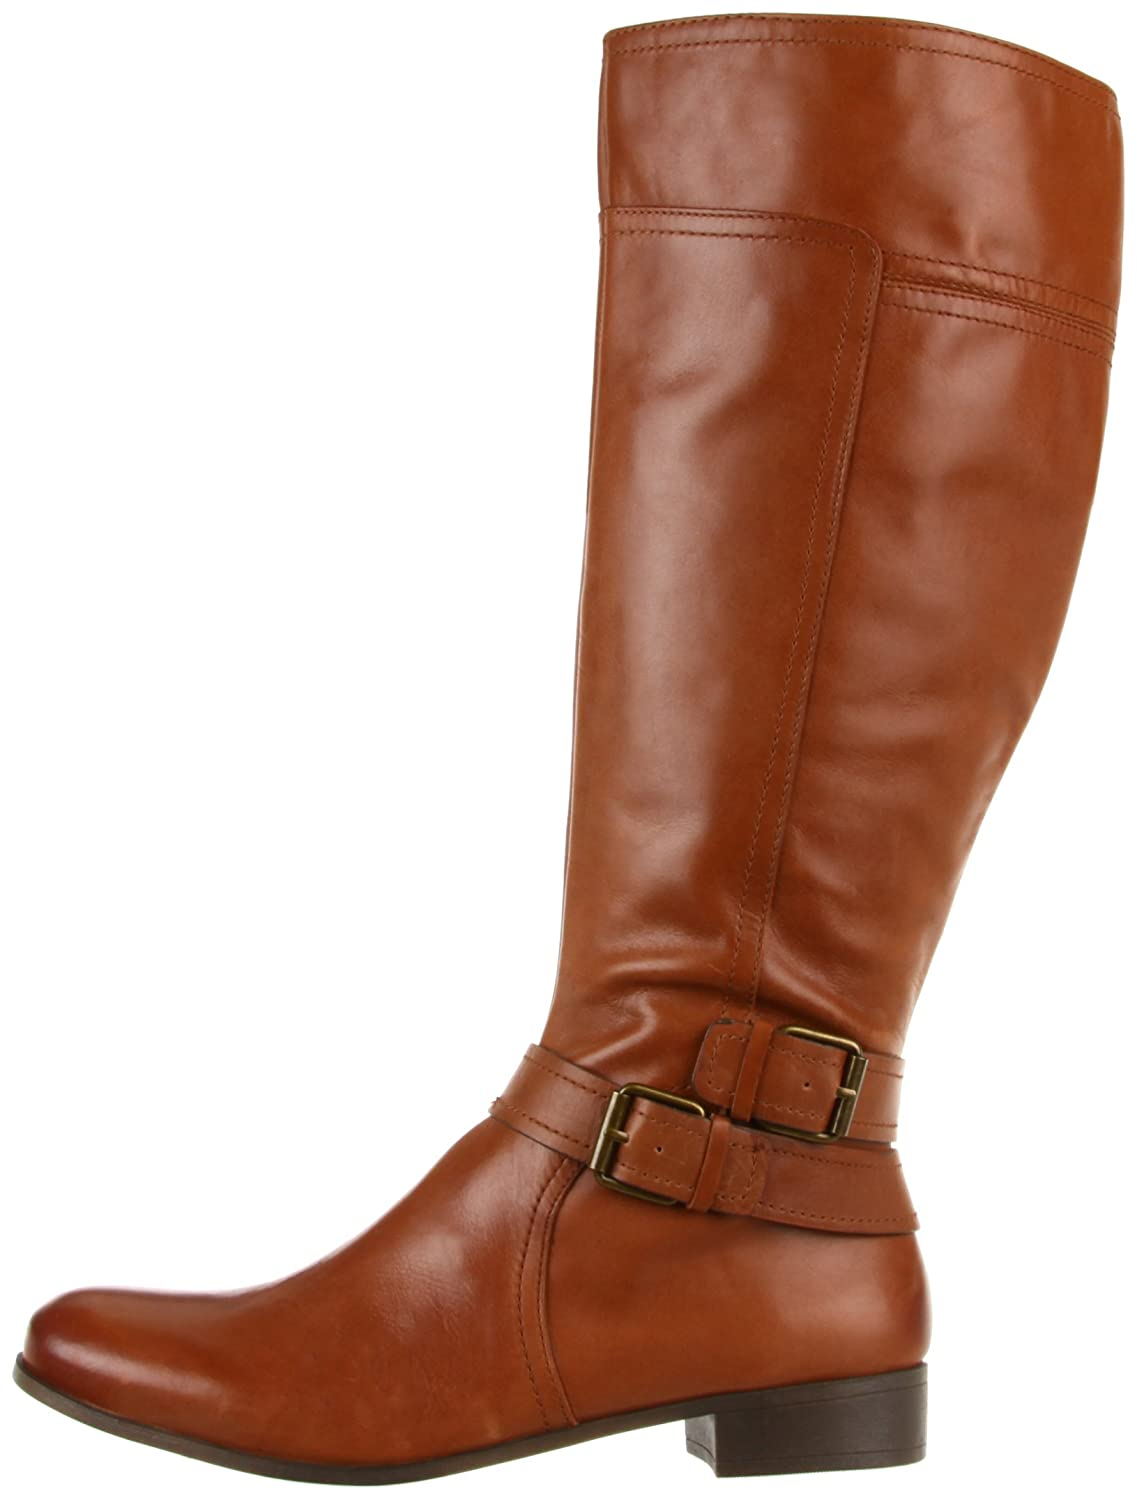 65a2c160911 Nine West Shiza Womens Tan Leather Fashion Knee-High Boots Size UK 4   Amazon.co.uk  Shoes   Bags